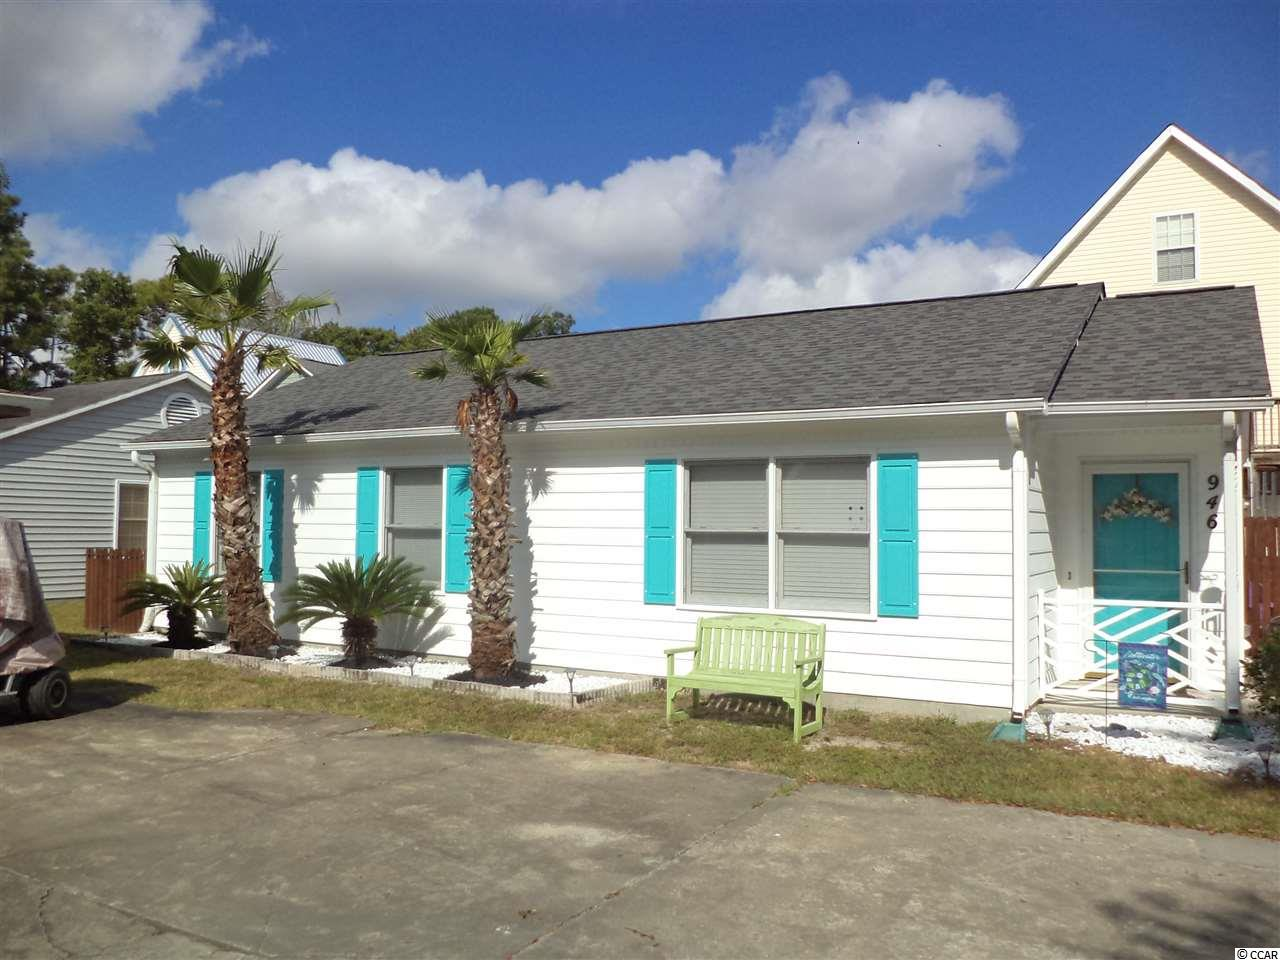 Welcome to Tiffany Plantation in Ocean Drive! You will fall in love with this adorable 3 bd/2ba beach home just a few blocks to the beach. Quality upgrades to include Bamboo flooring, newer carpeting in all bedrooms, brand new back and side doors, New Architectural Shake Shingle 30 yr. roof placed in July 2018, newer high efficiency HVAC unit only 3yrs. young, house painted in 2017. Attic and outside storage space for all of your supplies and a full size laundry room. 2 car parking and of course room to park your golf cart as well! Lovely community pool to sit and relax or take a quick dip after a day at the beach, perhaps sit in the lovely side yard which is completely fenced in (great for your furry babies) with friends and family for a BBQ and listen to the ocean waves.. A charming quiet community with low monthly HOA fees which includes your lawn mowing too.. wow! Minutes to Main St. the heart of North Myrtle Beach and quick access to Hwy. 31 to take you to all of the attractions the Grand Strand has to offer. Call today for your showing before this one gets away.